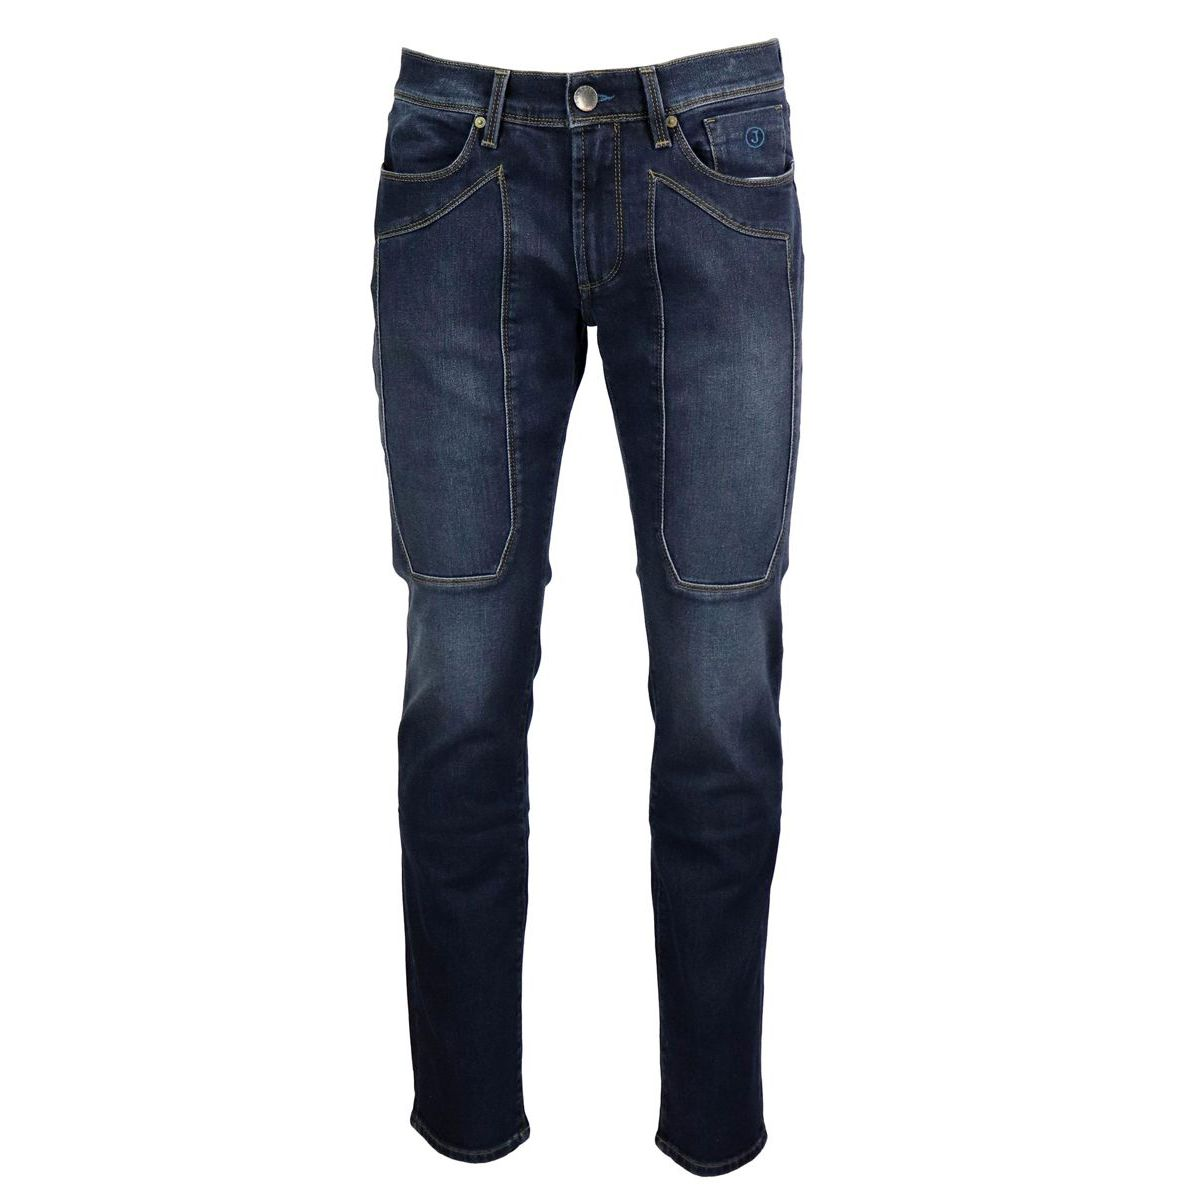 Slim jeans with 3 Blue patch and visible stitching Denim Jeckerson